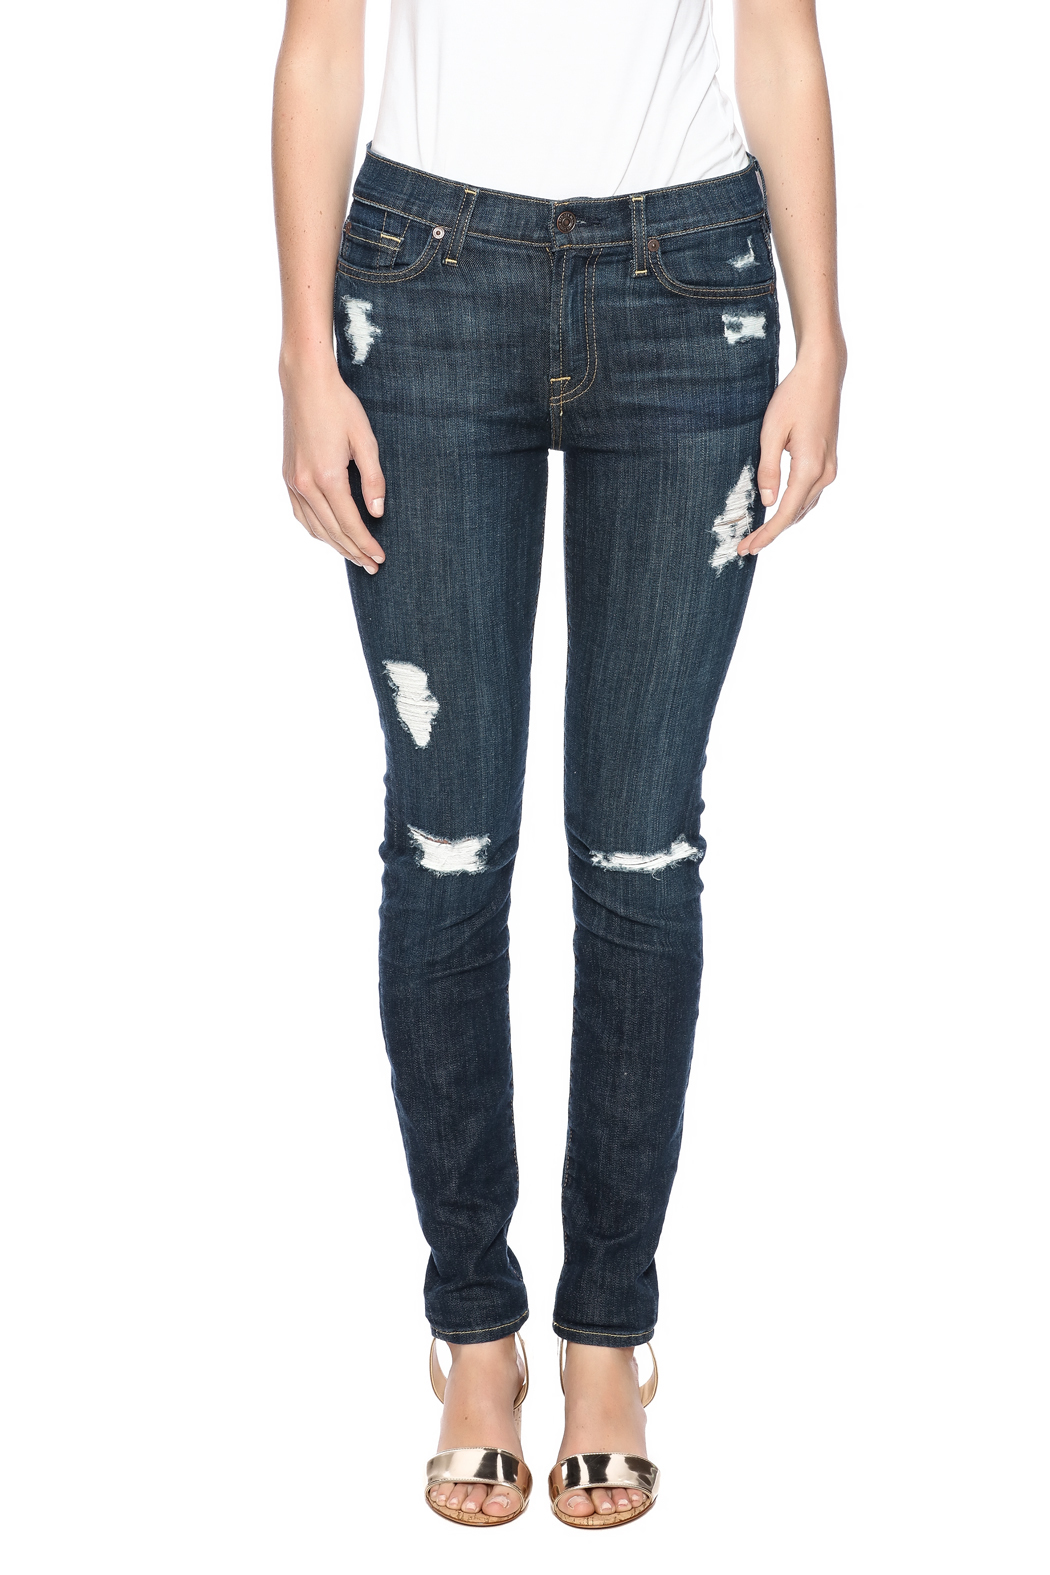 7 For all Mankind The Distressed Skinny - Side Cropped Image